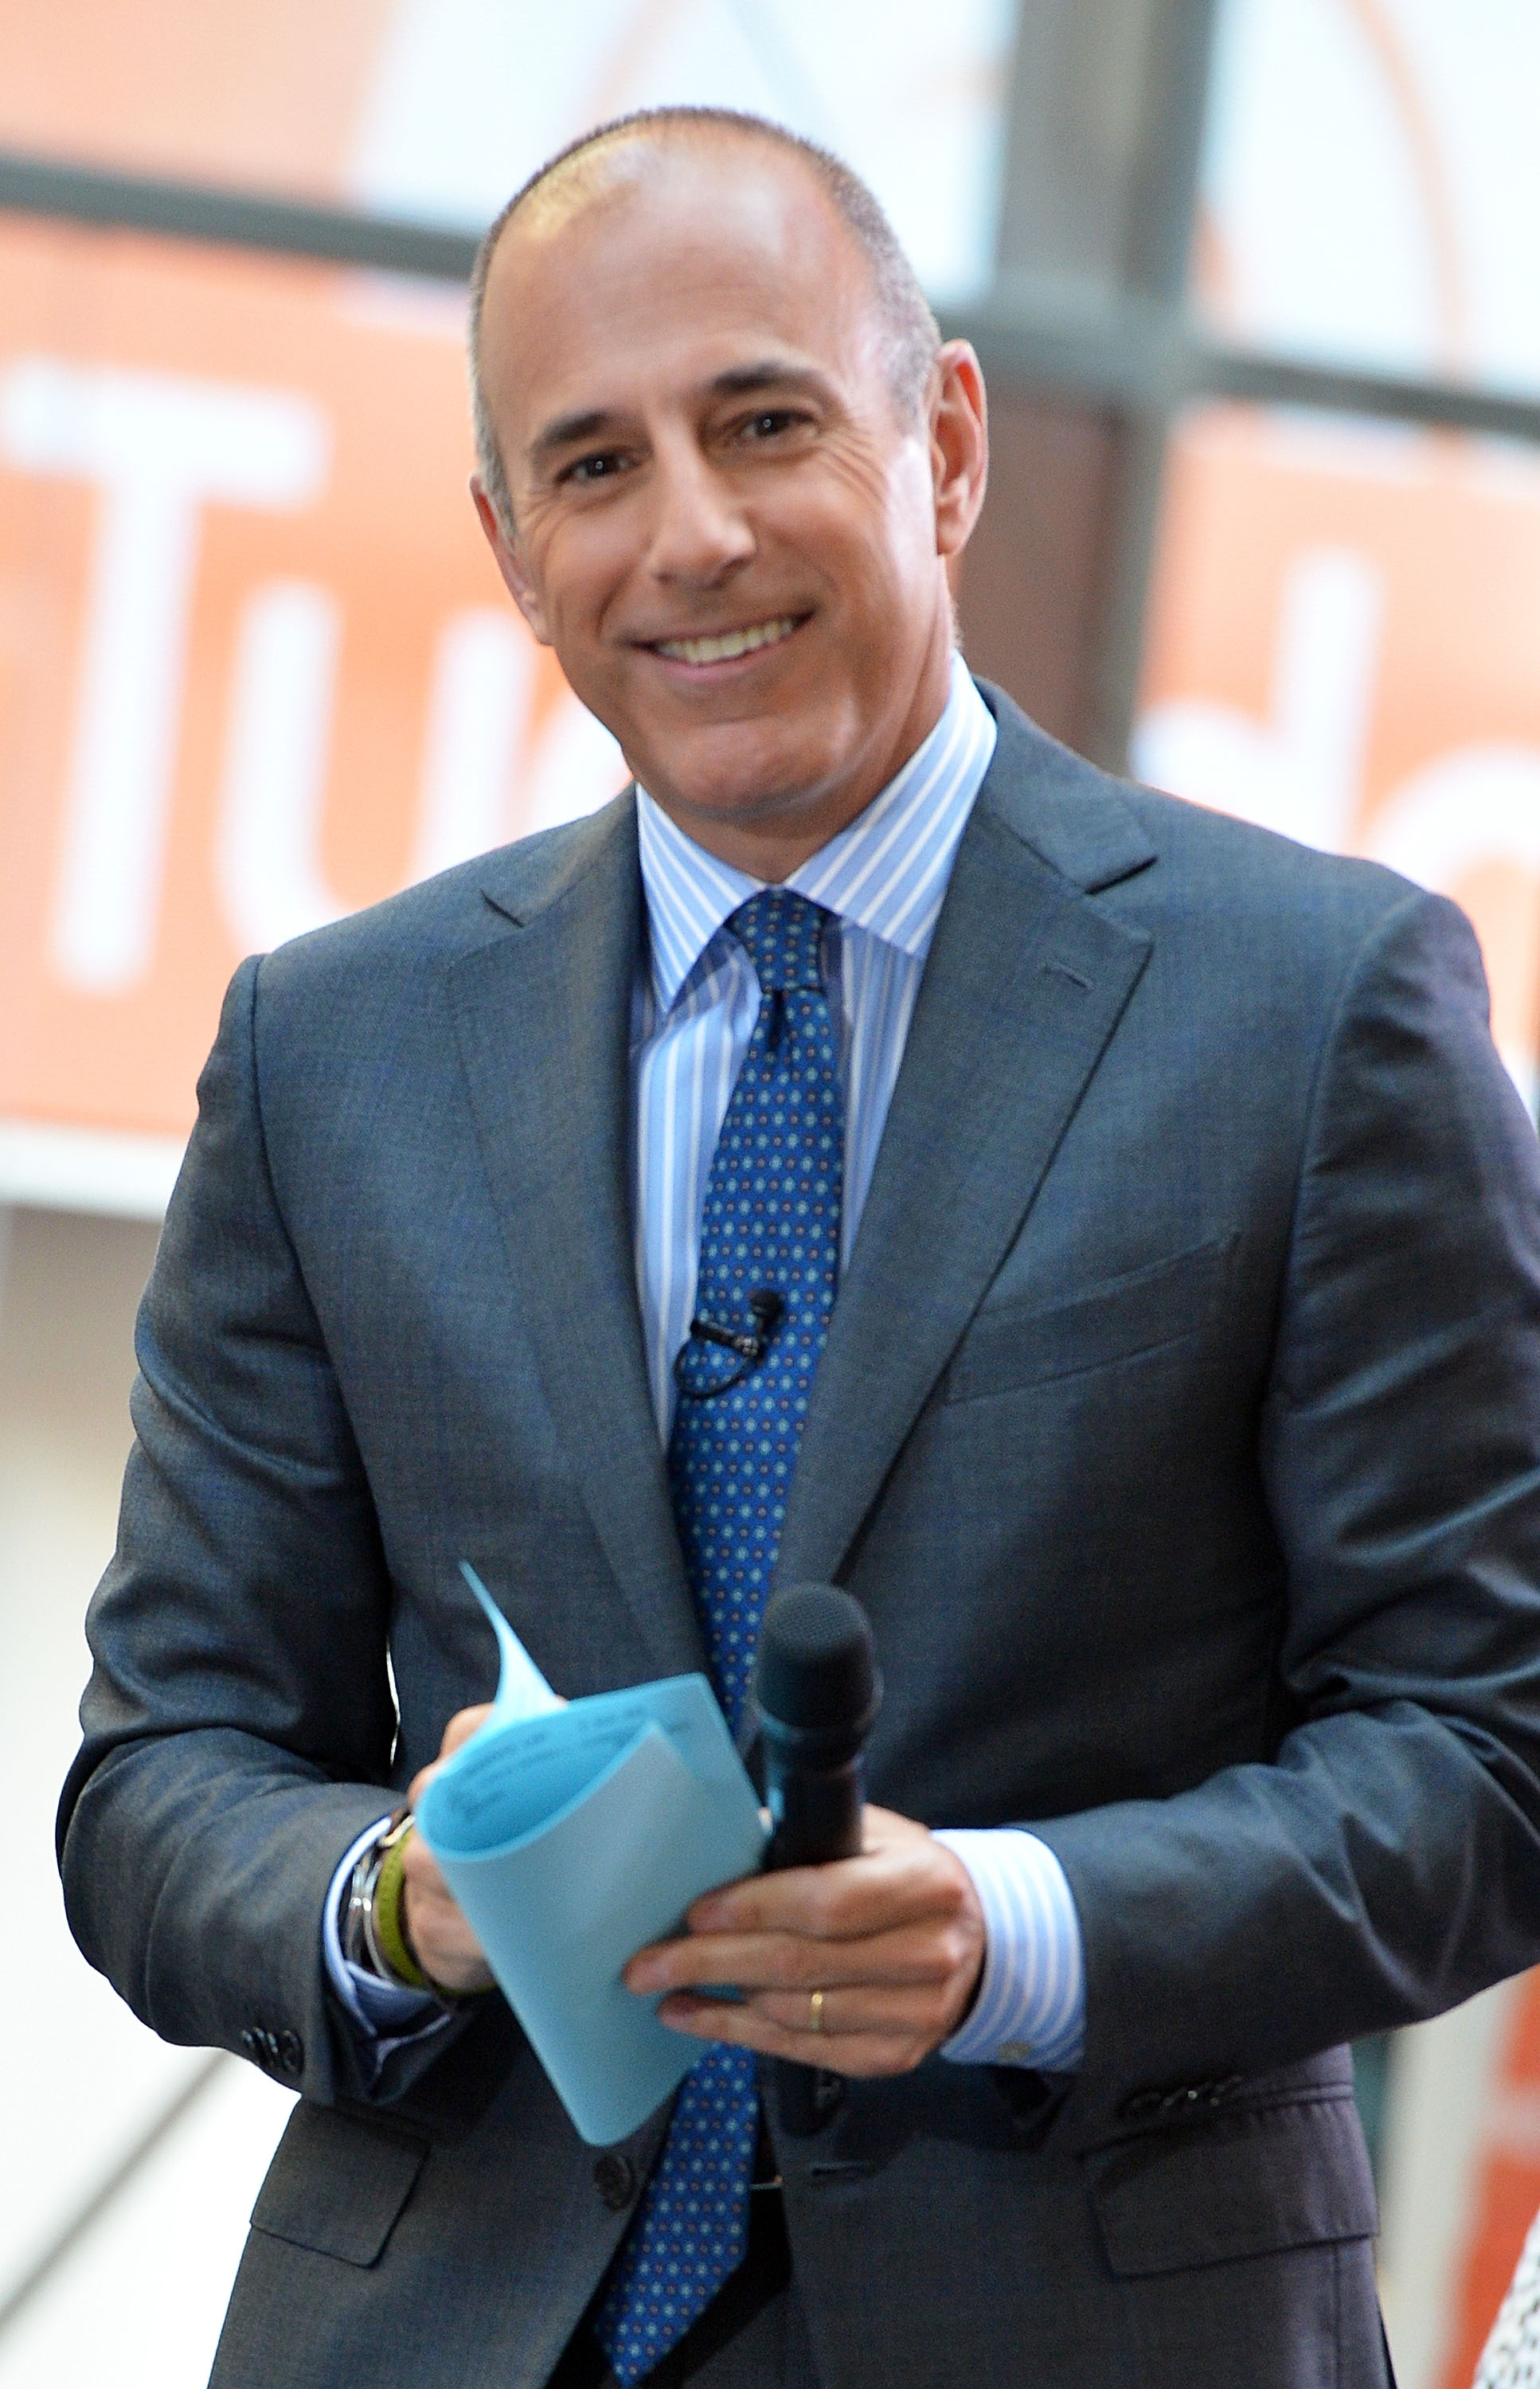 Report: NBC pays for Matt Lauer to take helicopter to 'Today'